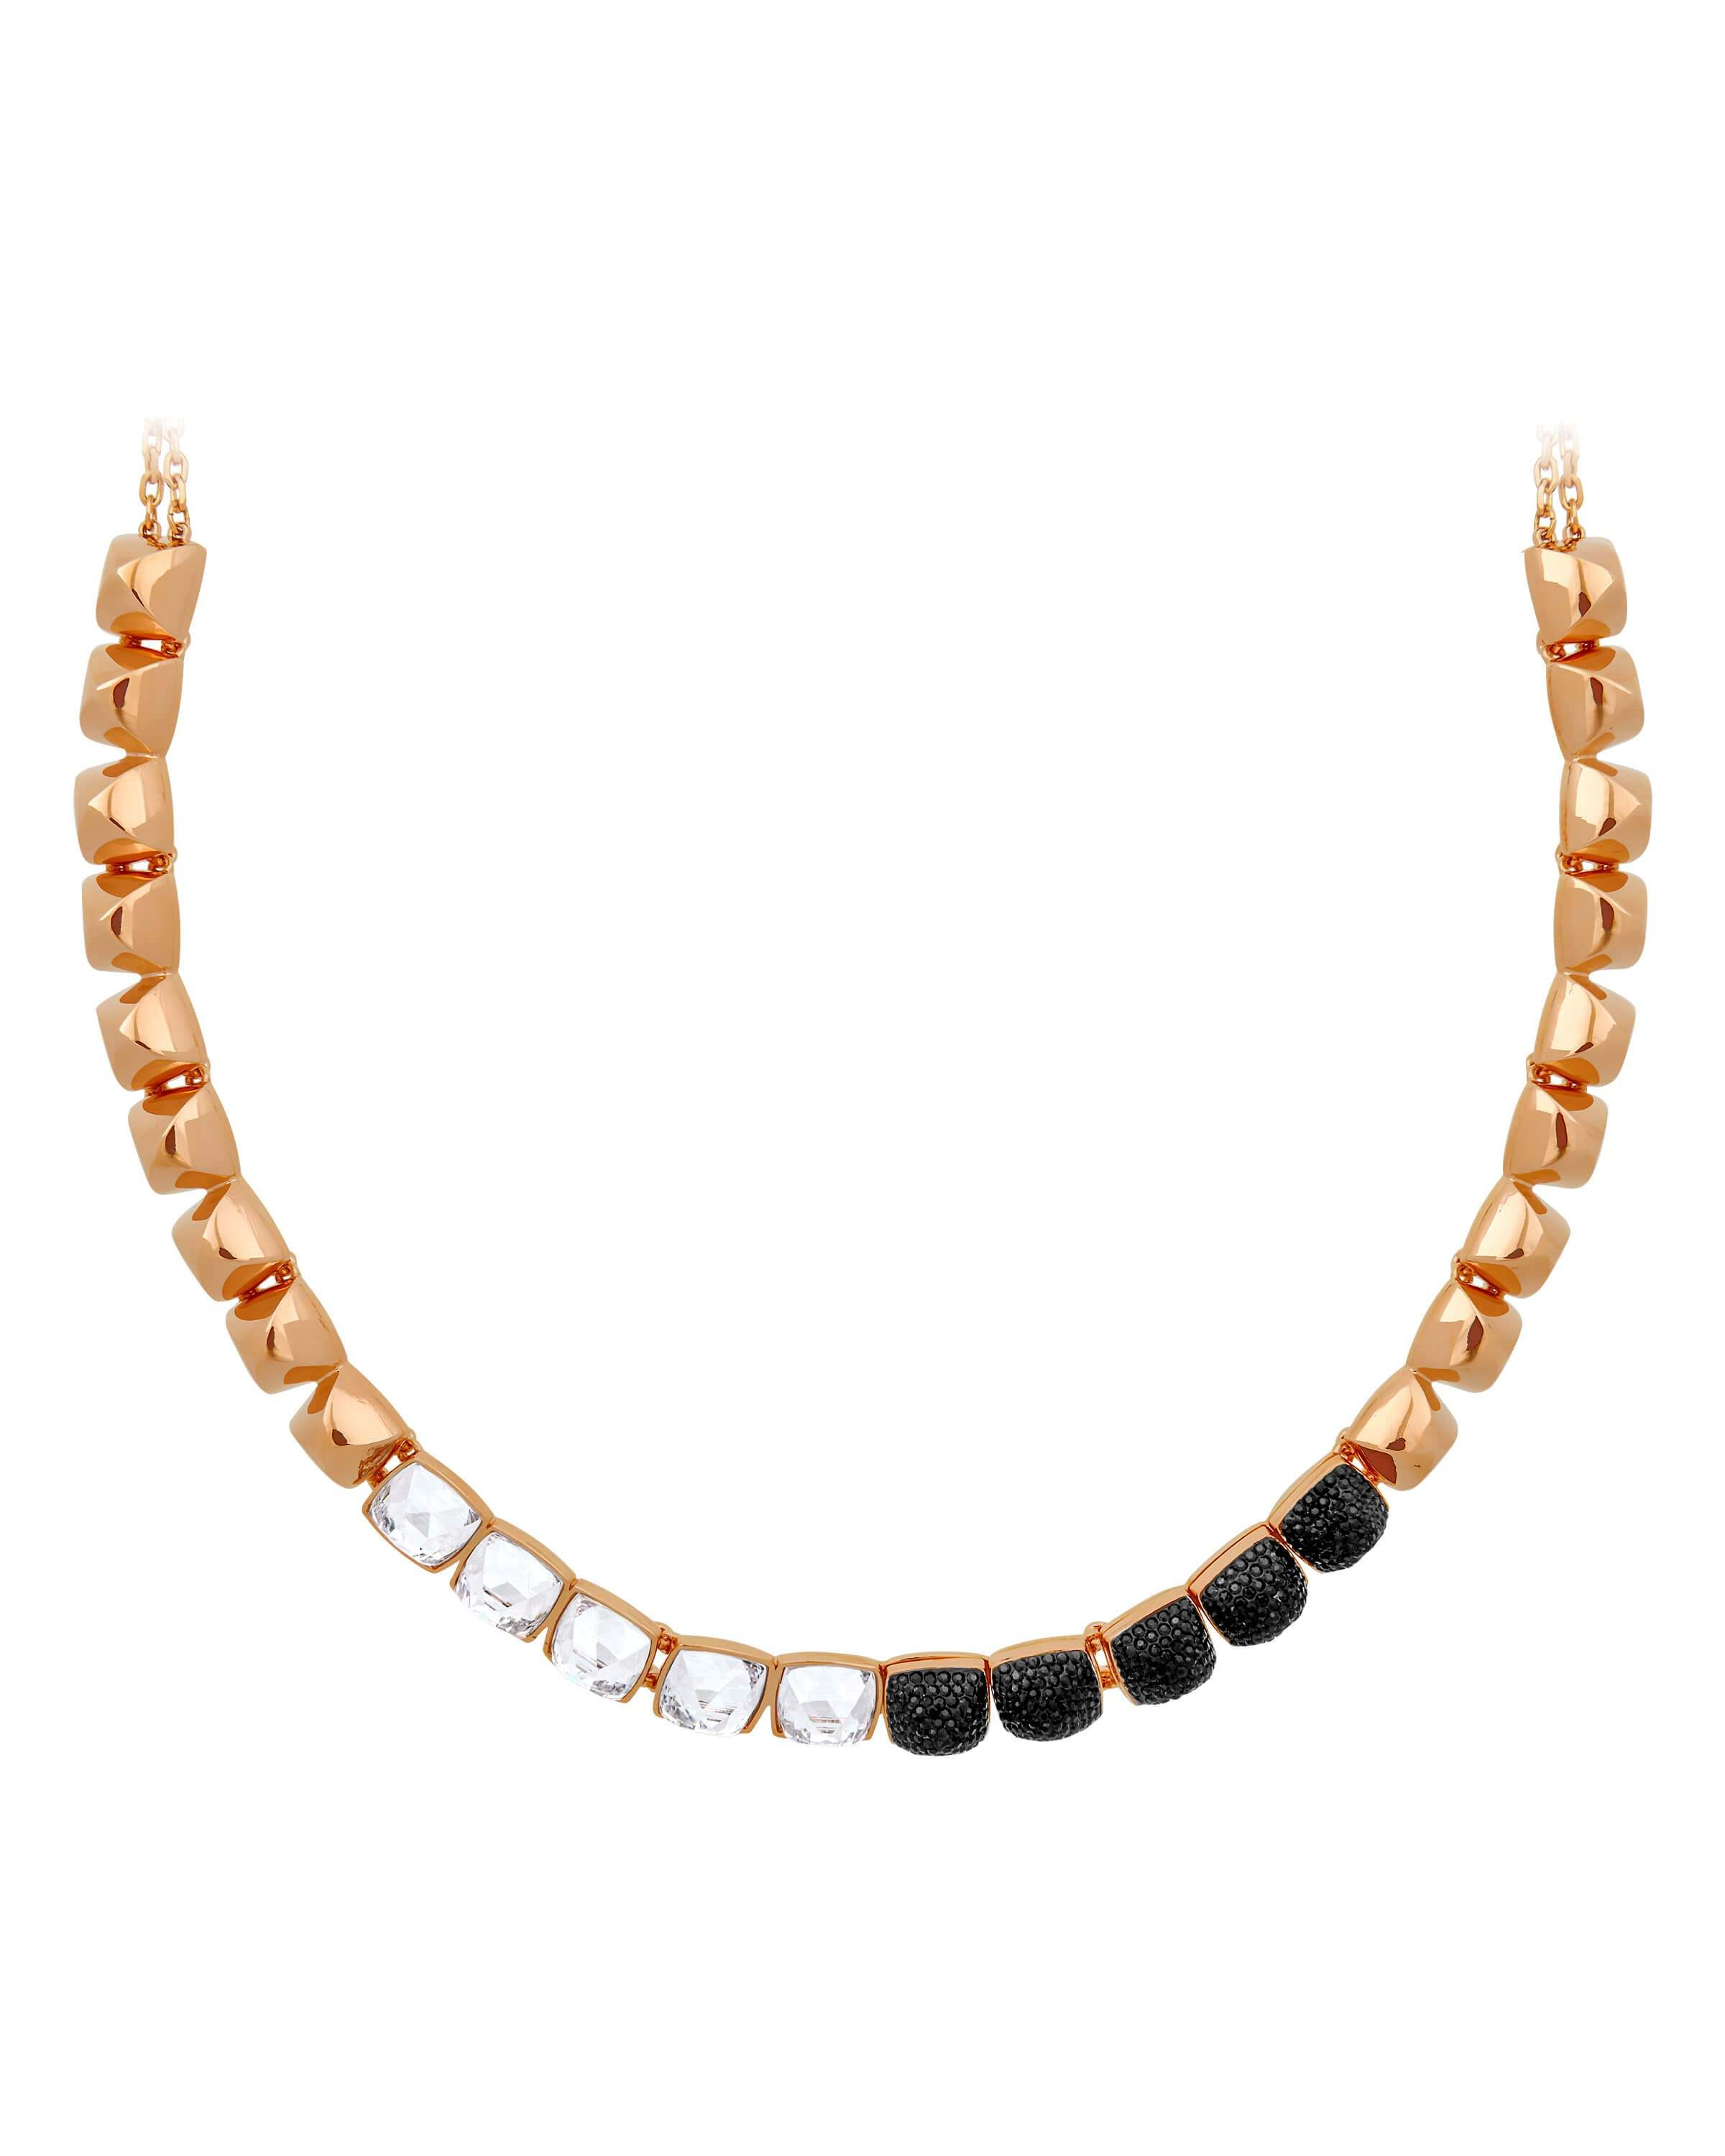 Collection Name: Glance 18k Rose Gold-Plated Black & Clear Swarovski Crystal Chain Length: 15.5 in.